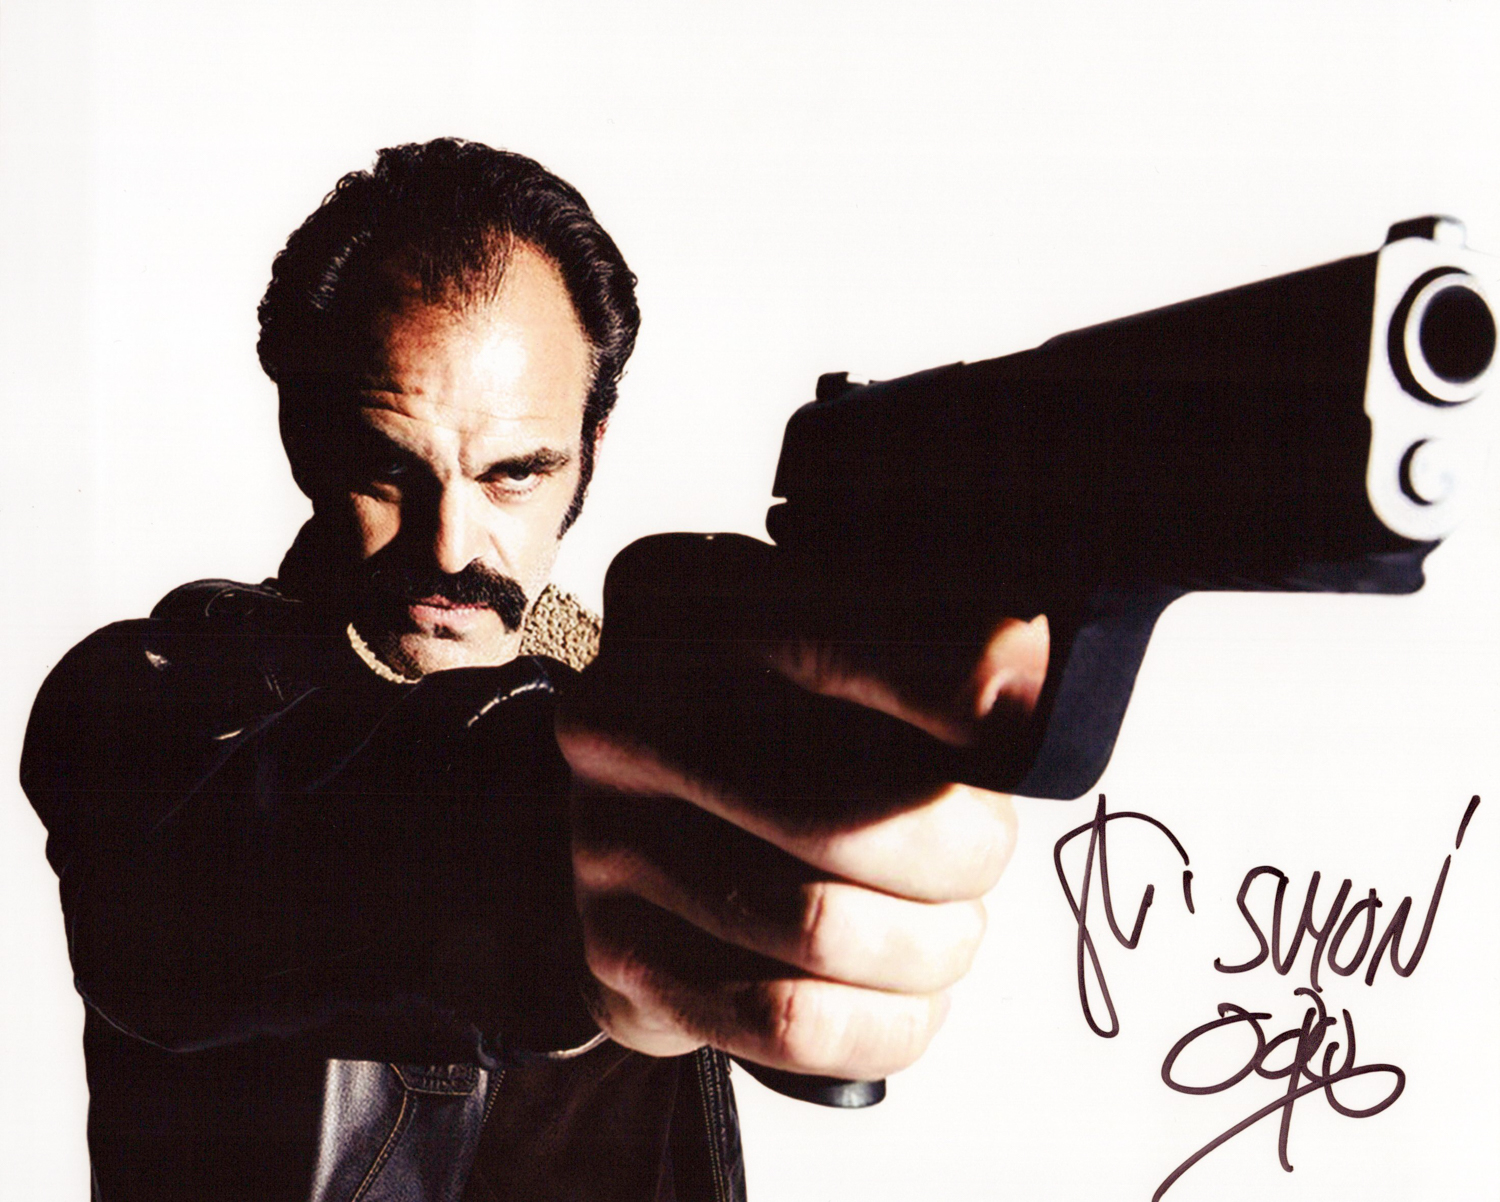 Steven Ogg Original Autogramm auf Foto 20x25cm  - The Walking Dead